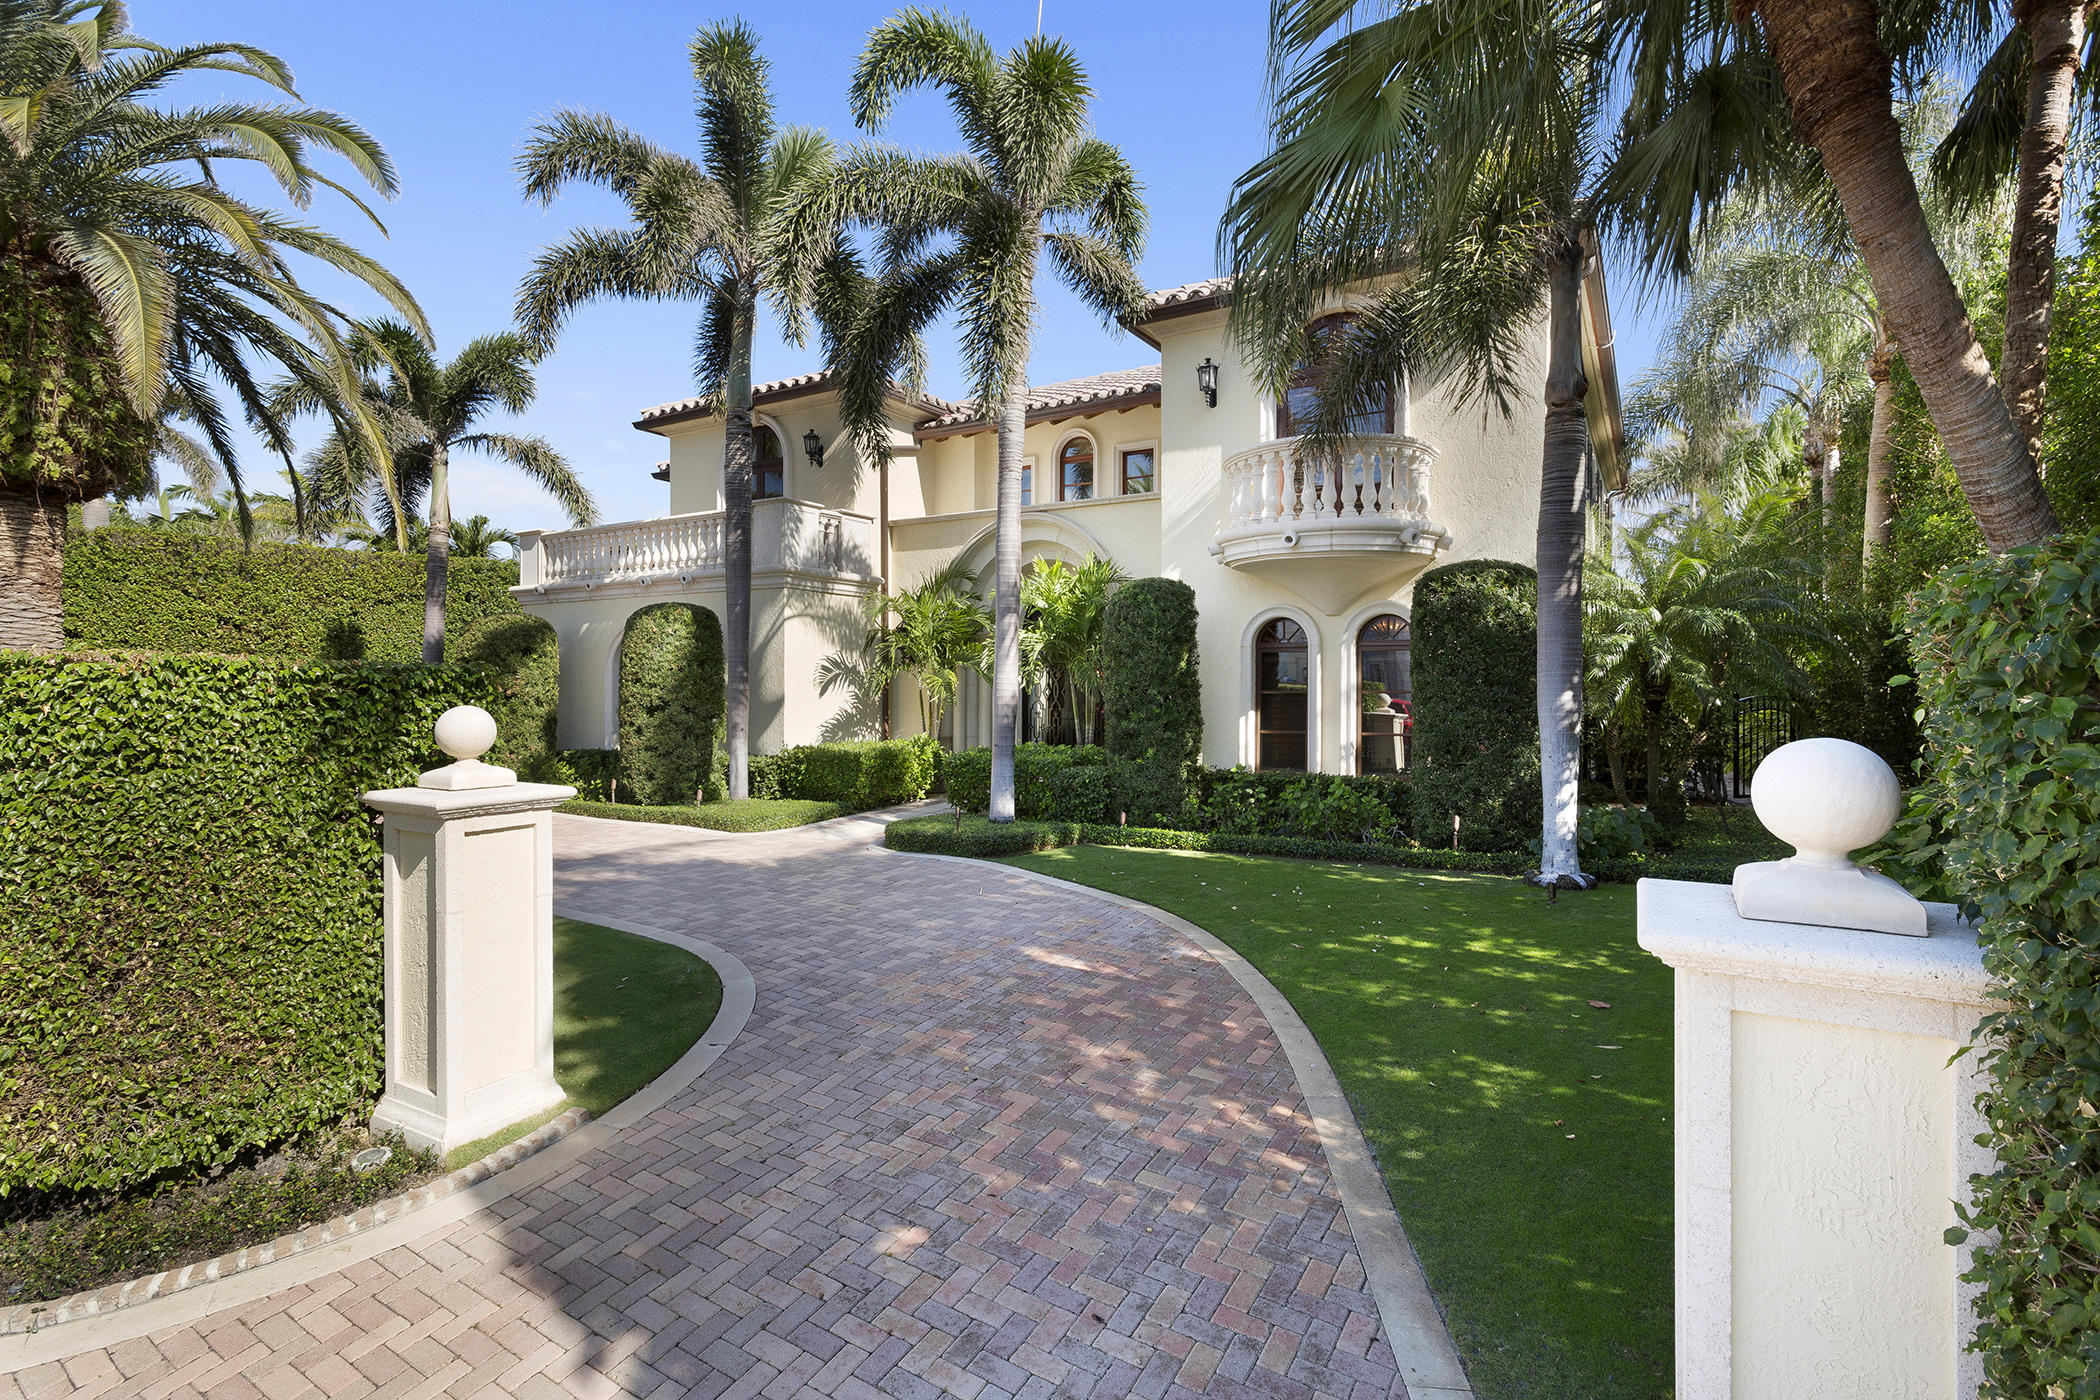 New Home for sale at 560 Island Drive in Palm Beach